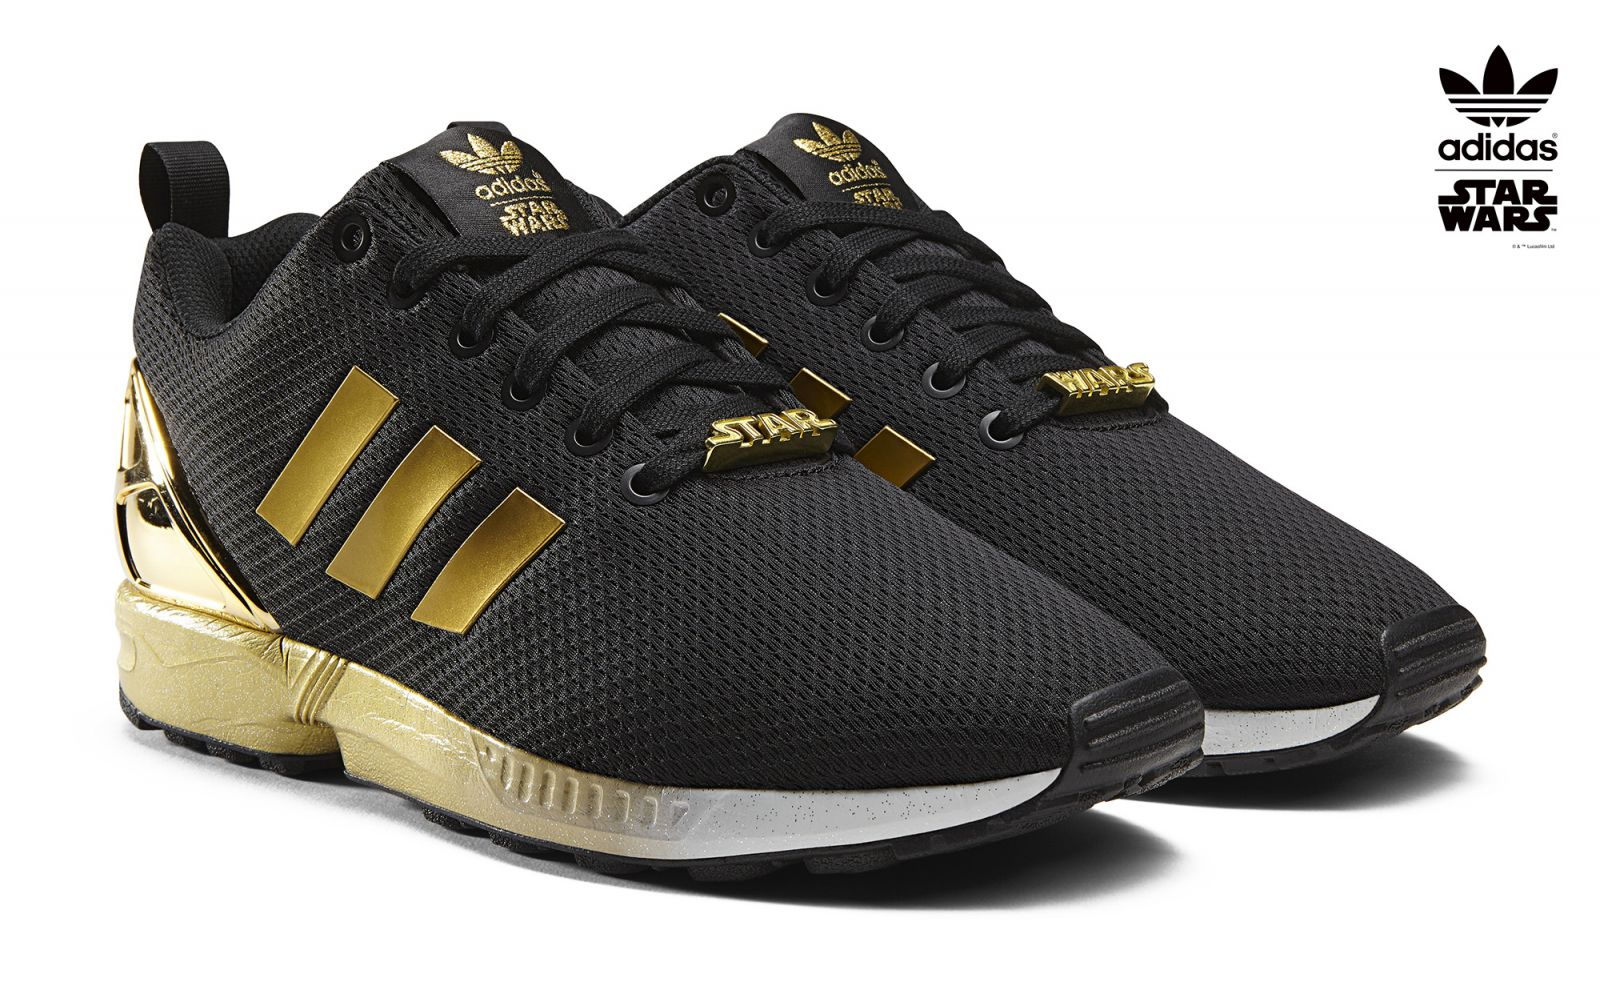 4c83dfe33 Adidas Zx Flux Black Gold wallbank-lfc.co.uk